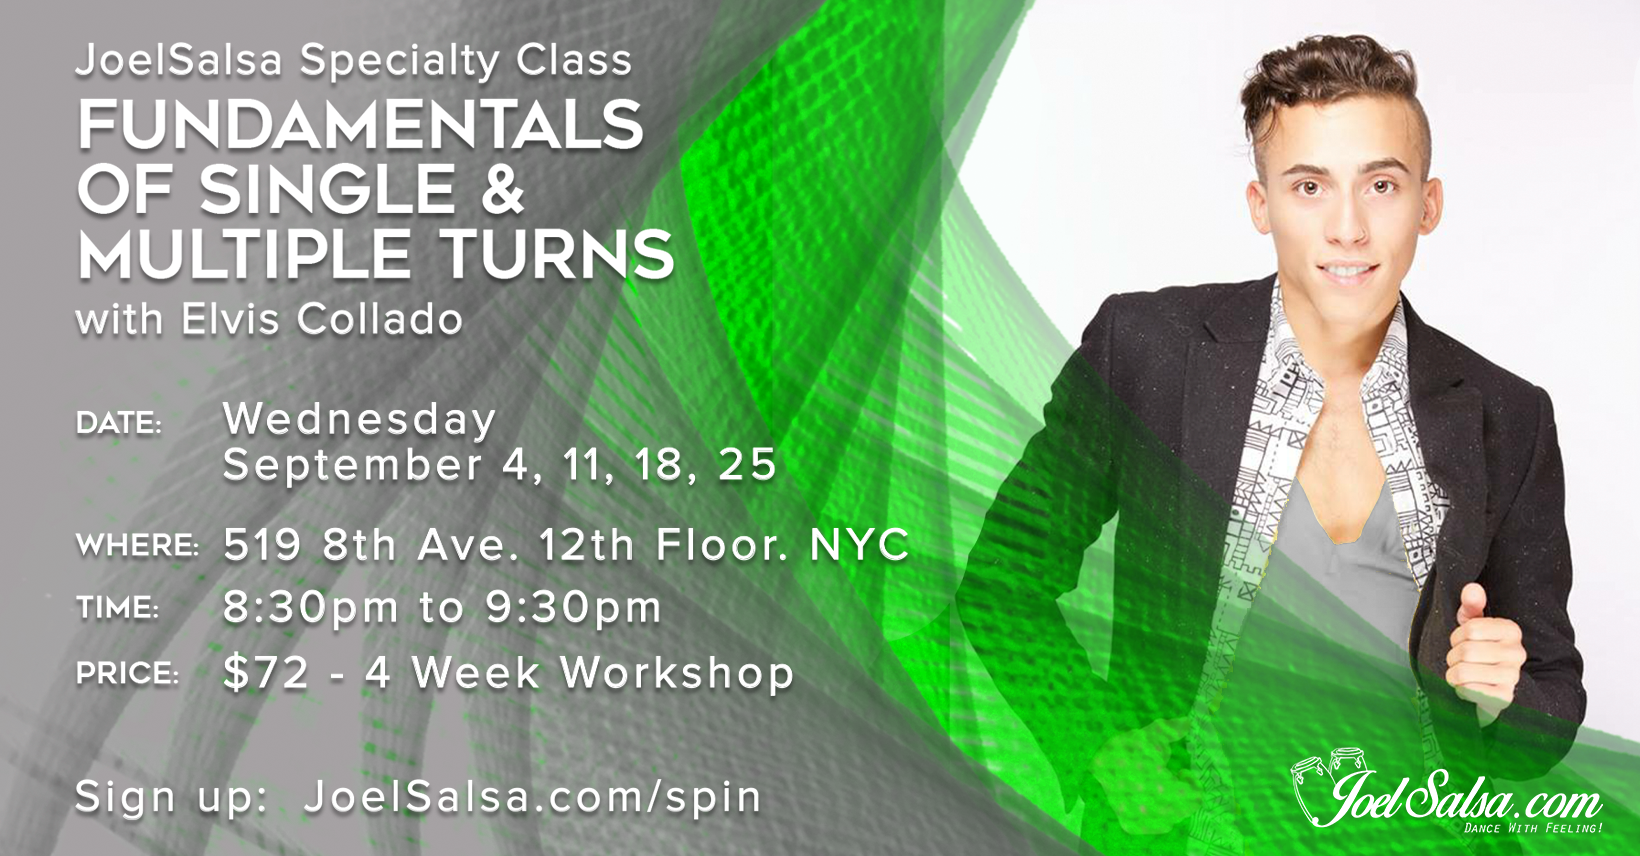 Fundamentals of Single & Multiple Turns with Elvis Collado -  Specialty class at JoelSalsa